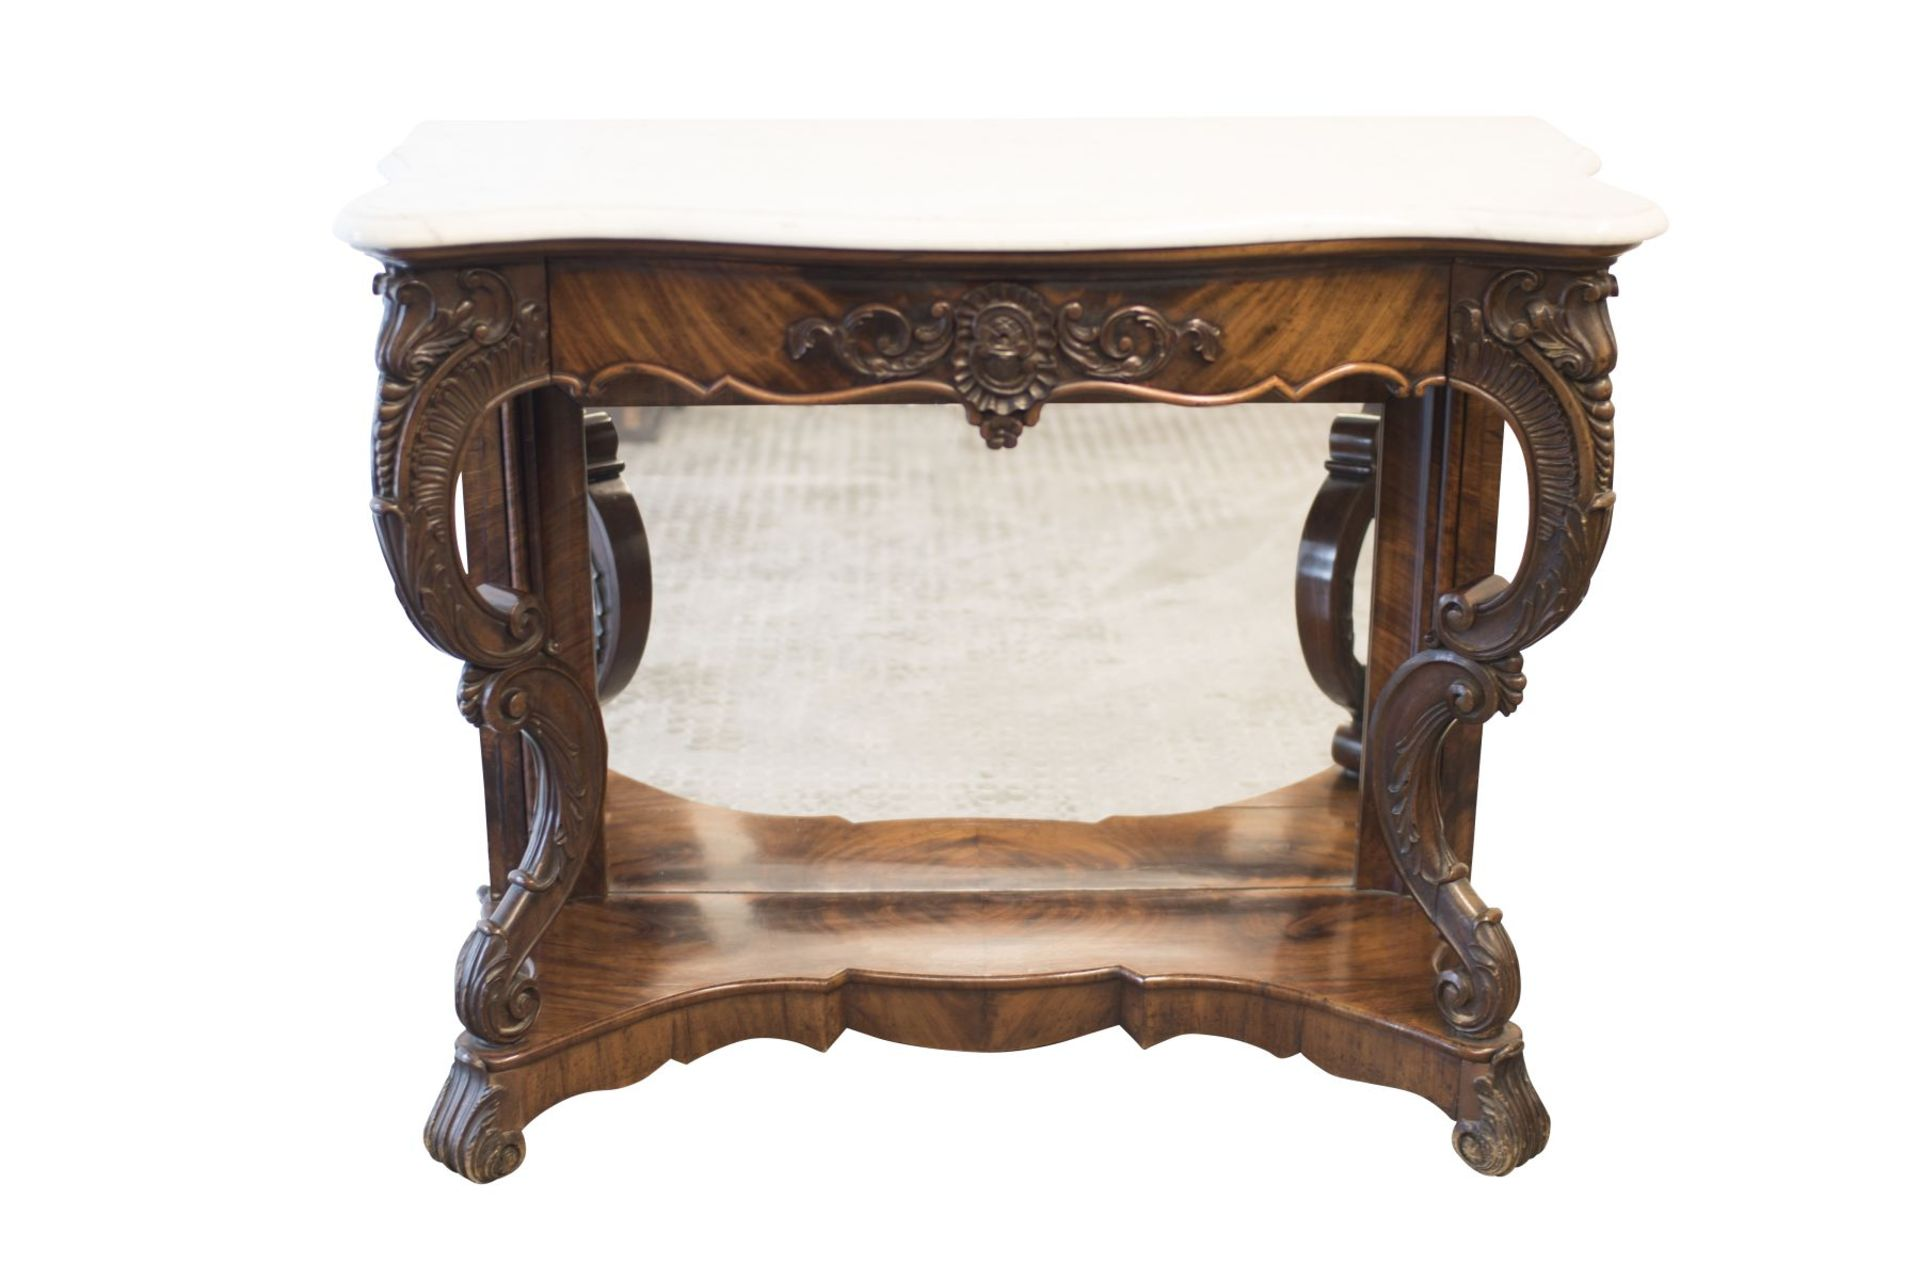 Baroque Buffet with Mirror and Marble Top - Bild 6 aus 6